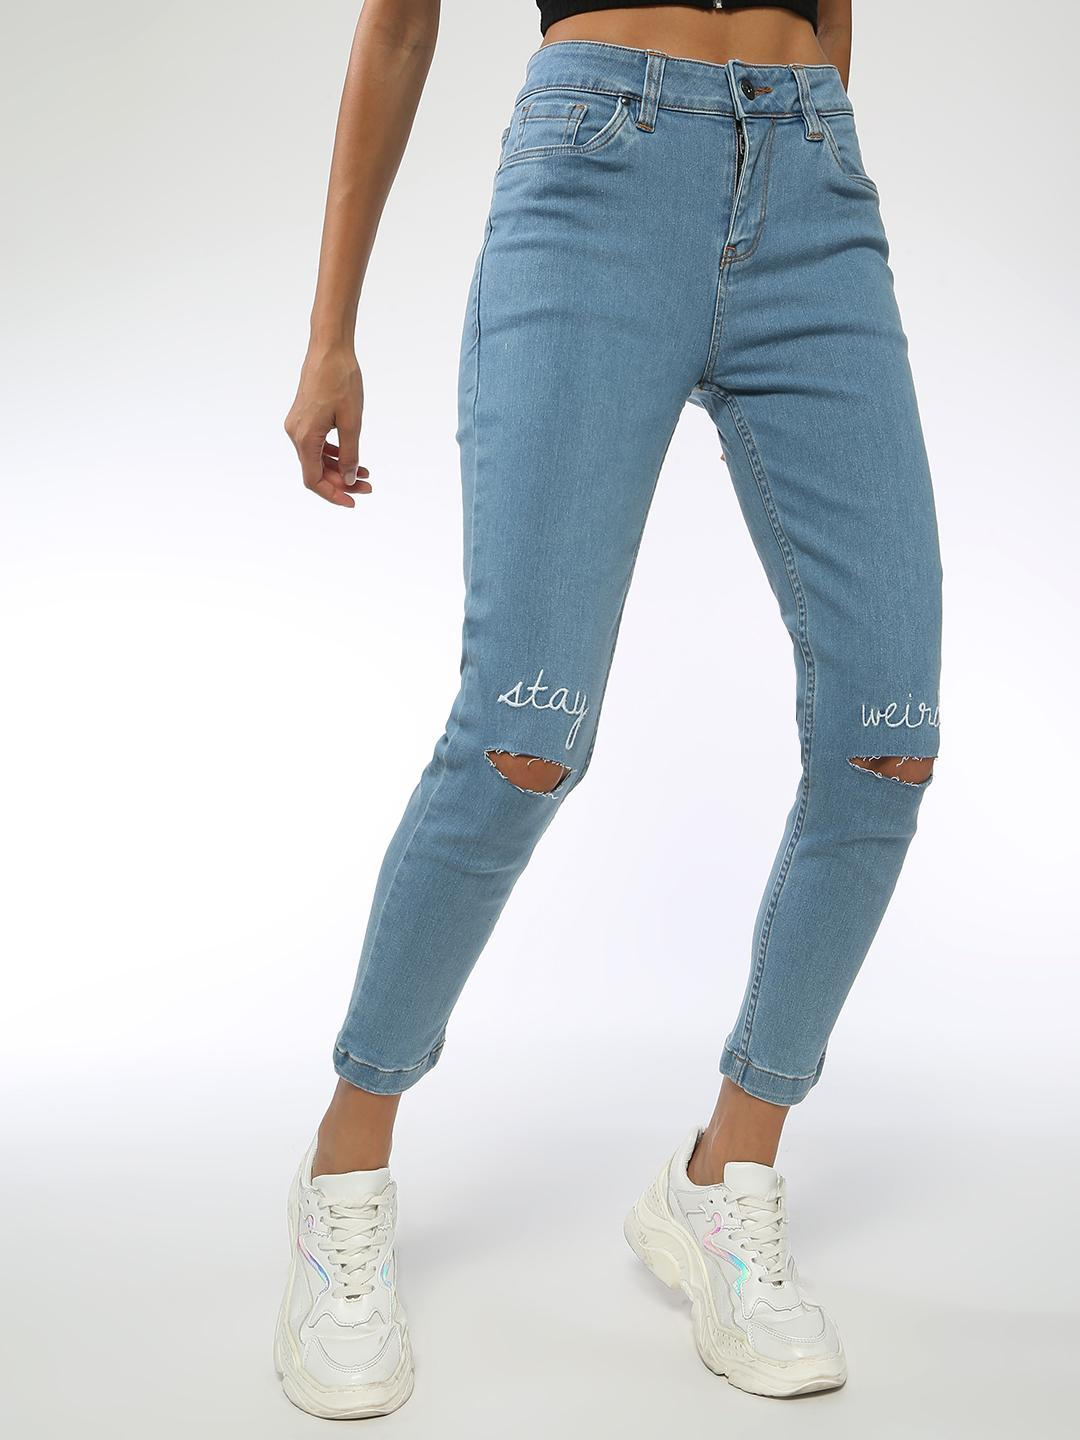 Blue Saint Blue Slogan Embroidered Ripped Jeans 1